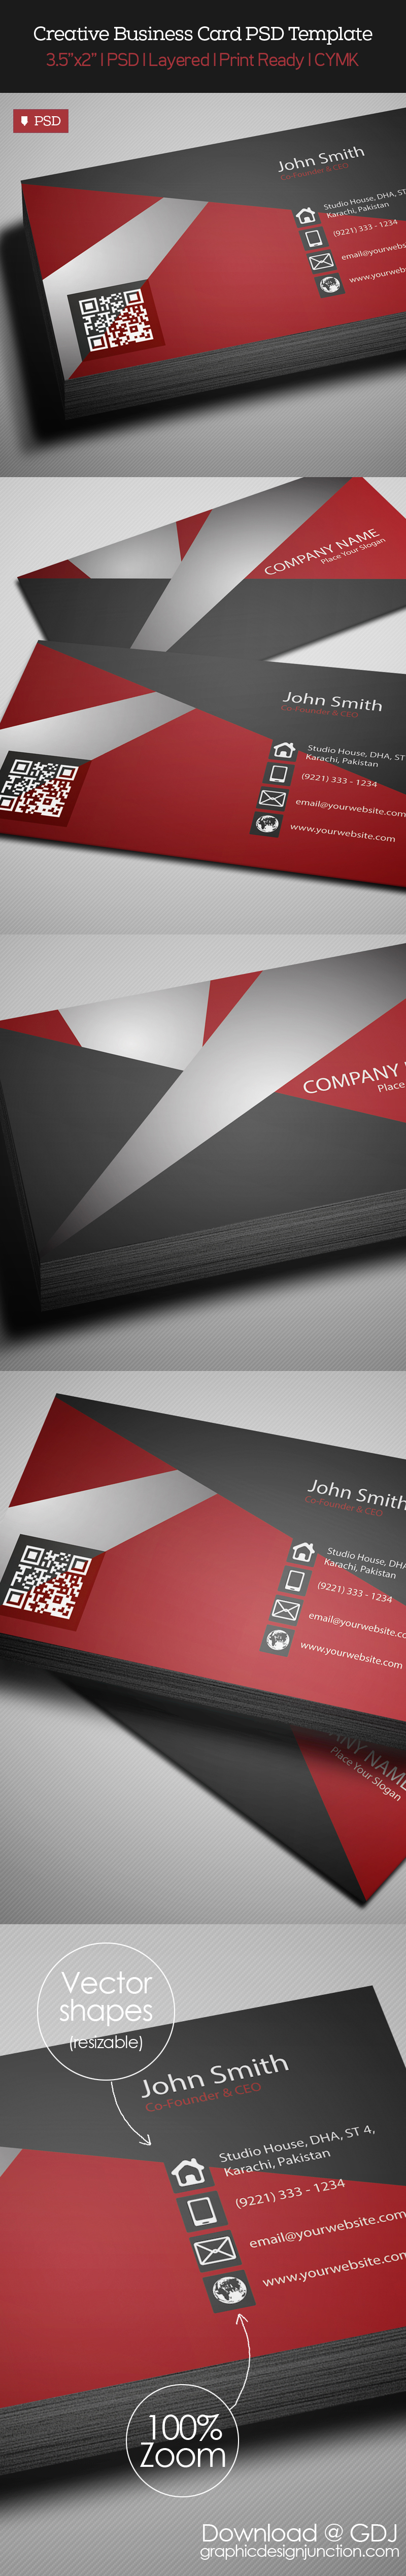 Free Creative Red Business Card PSD Template Freebies